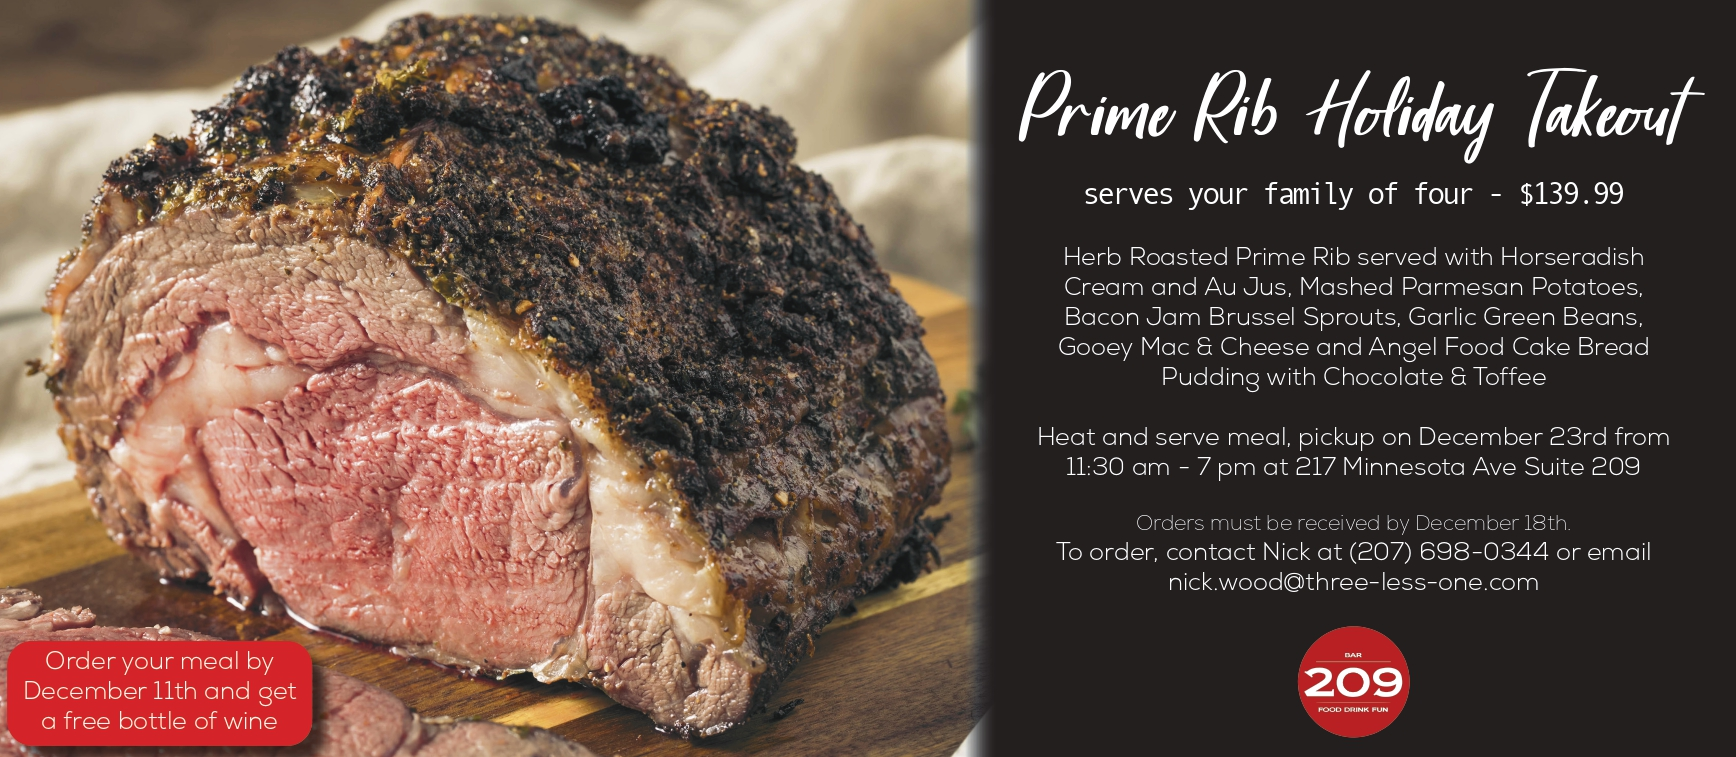 Prime Rib Ad Red (1)_page-0001